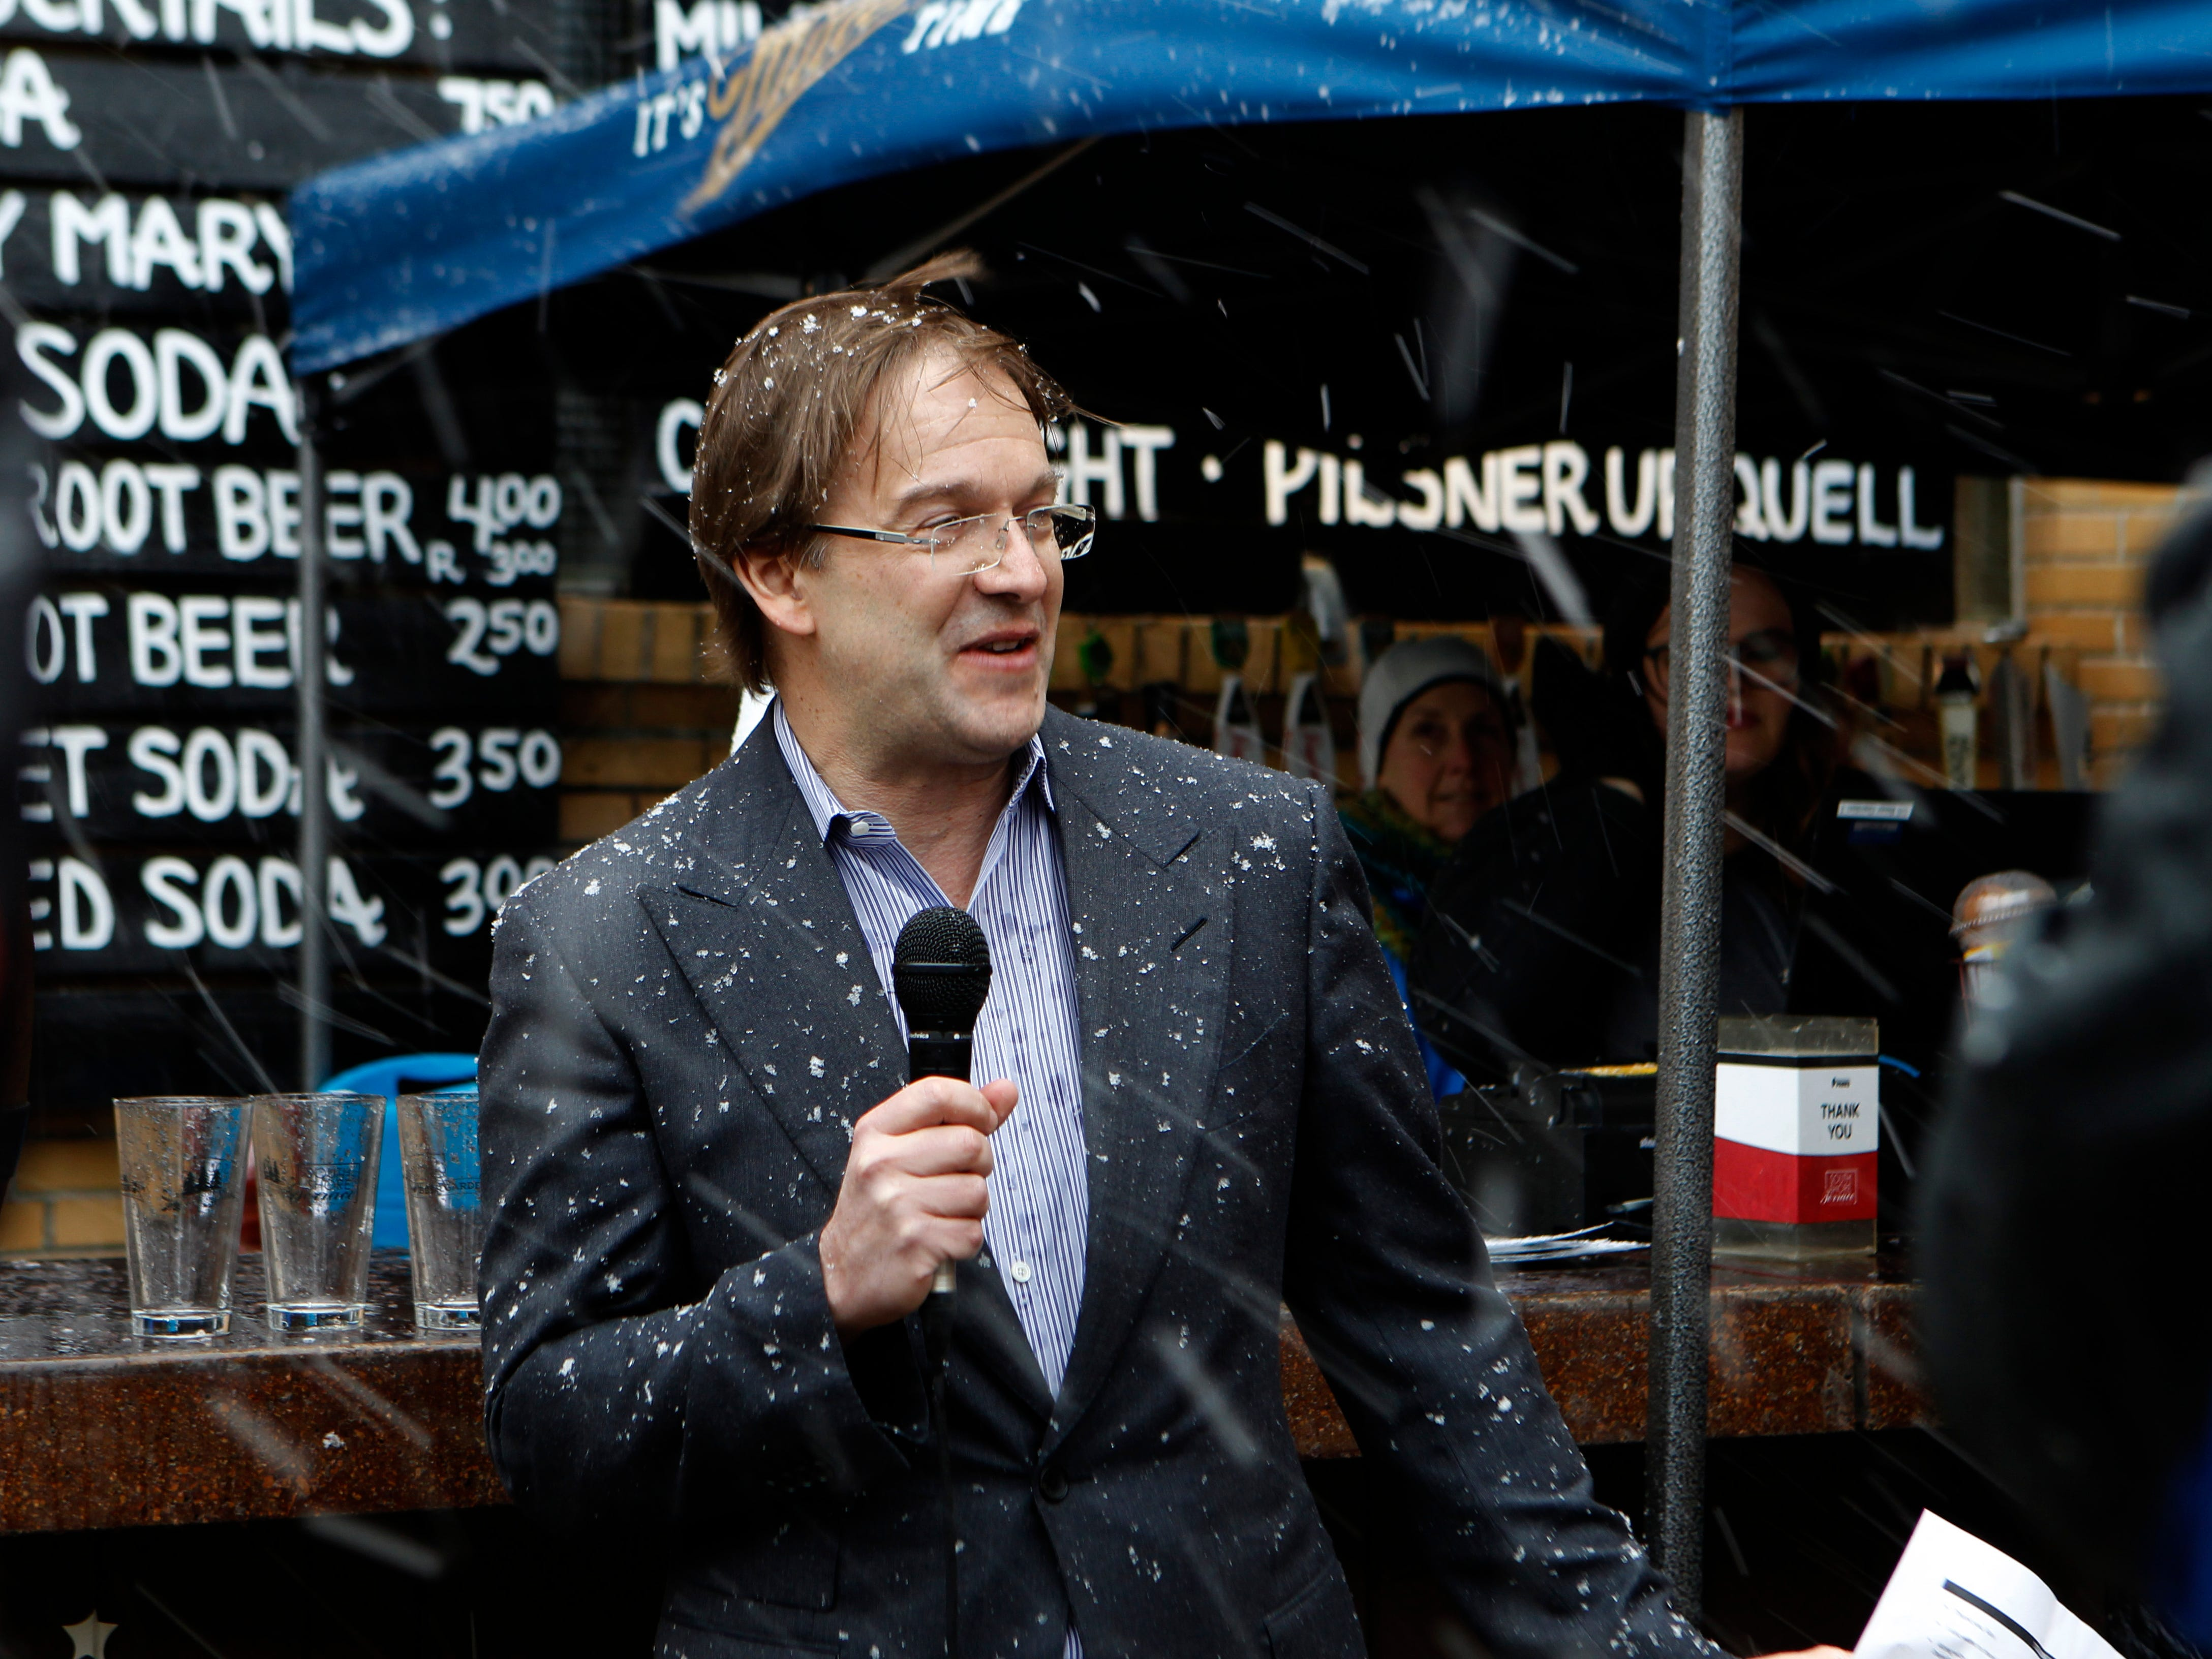 2019: Milwaukee County Executive Chris Abele speaks at South Shore Terrace on April 10. Several hundred turned out for beer garden opening that featured free beer and food.